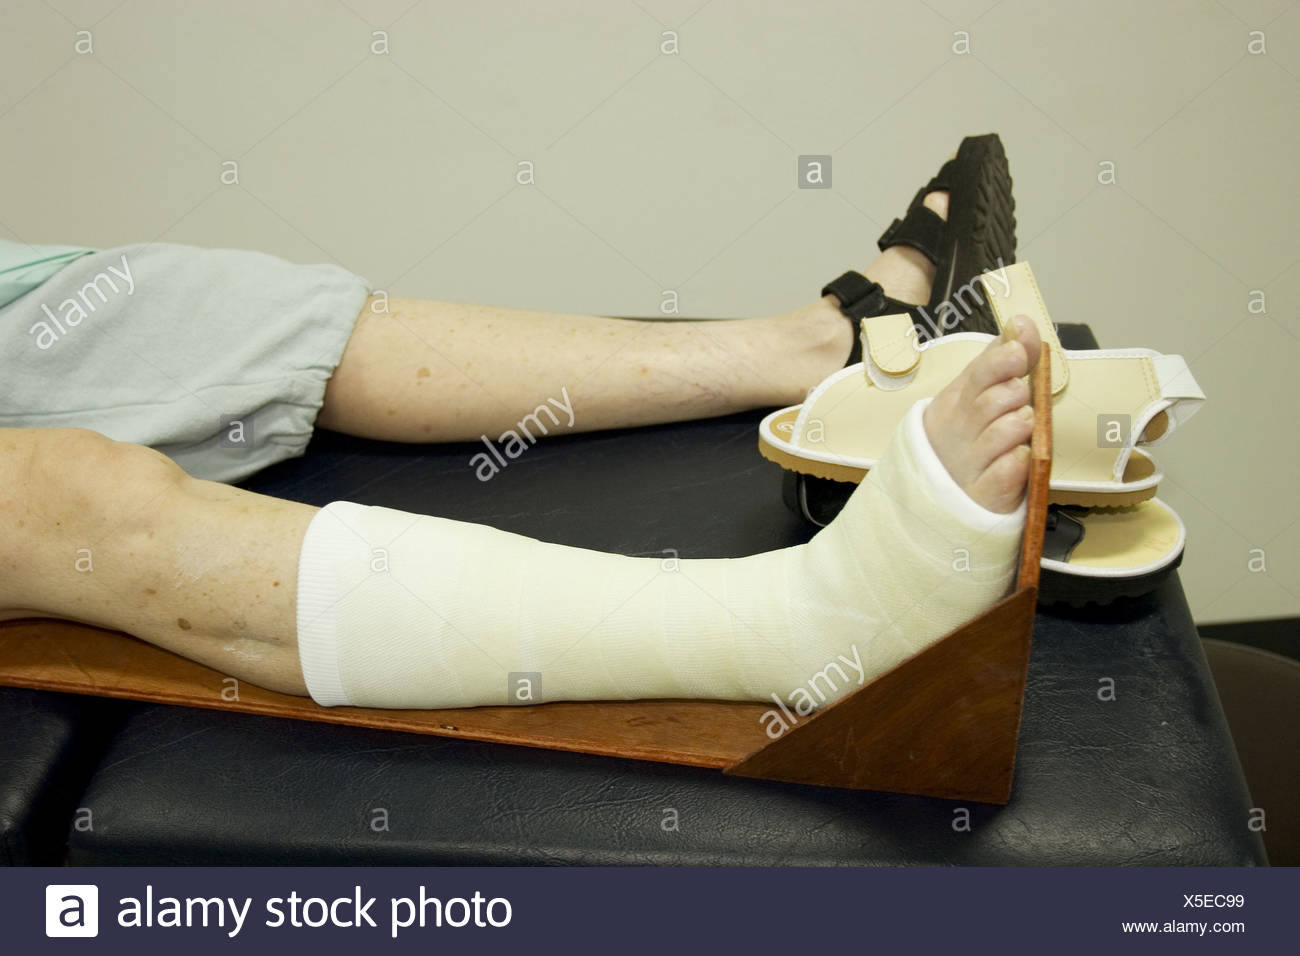 Cast On Leg Low Angle View Focus On Foot Thailand Stock Photo Alamy